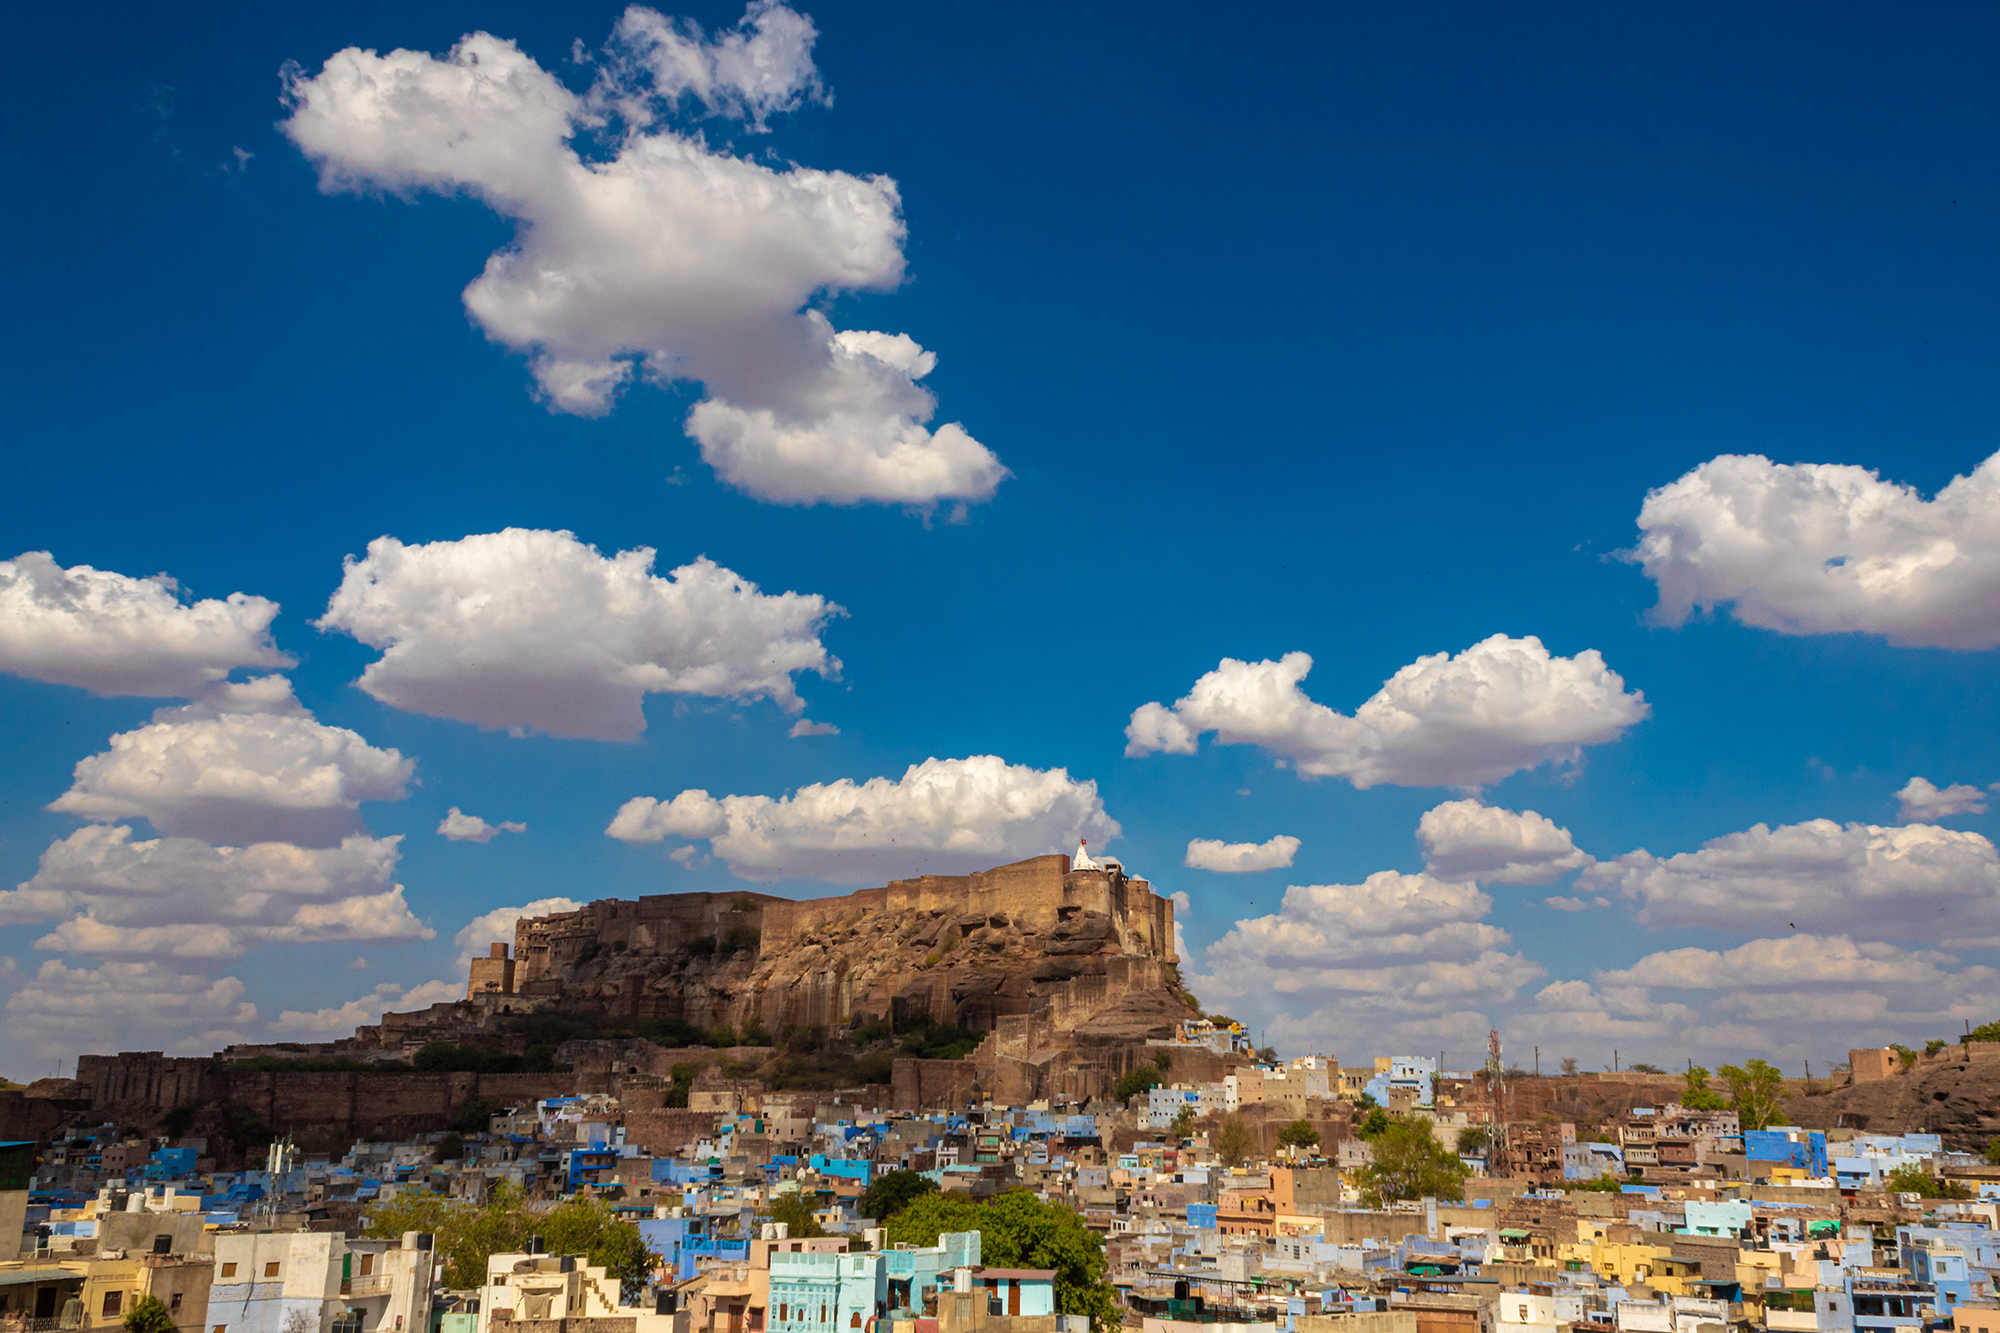 I took this photo from my terrace. On that day I saw clouds are looking very magical which I didn't see before.